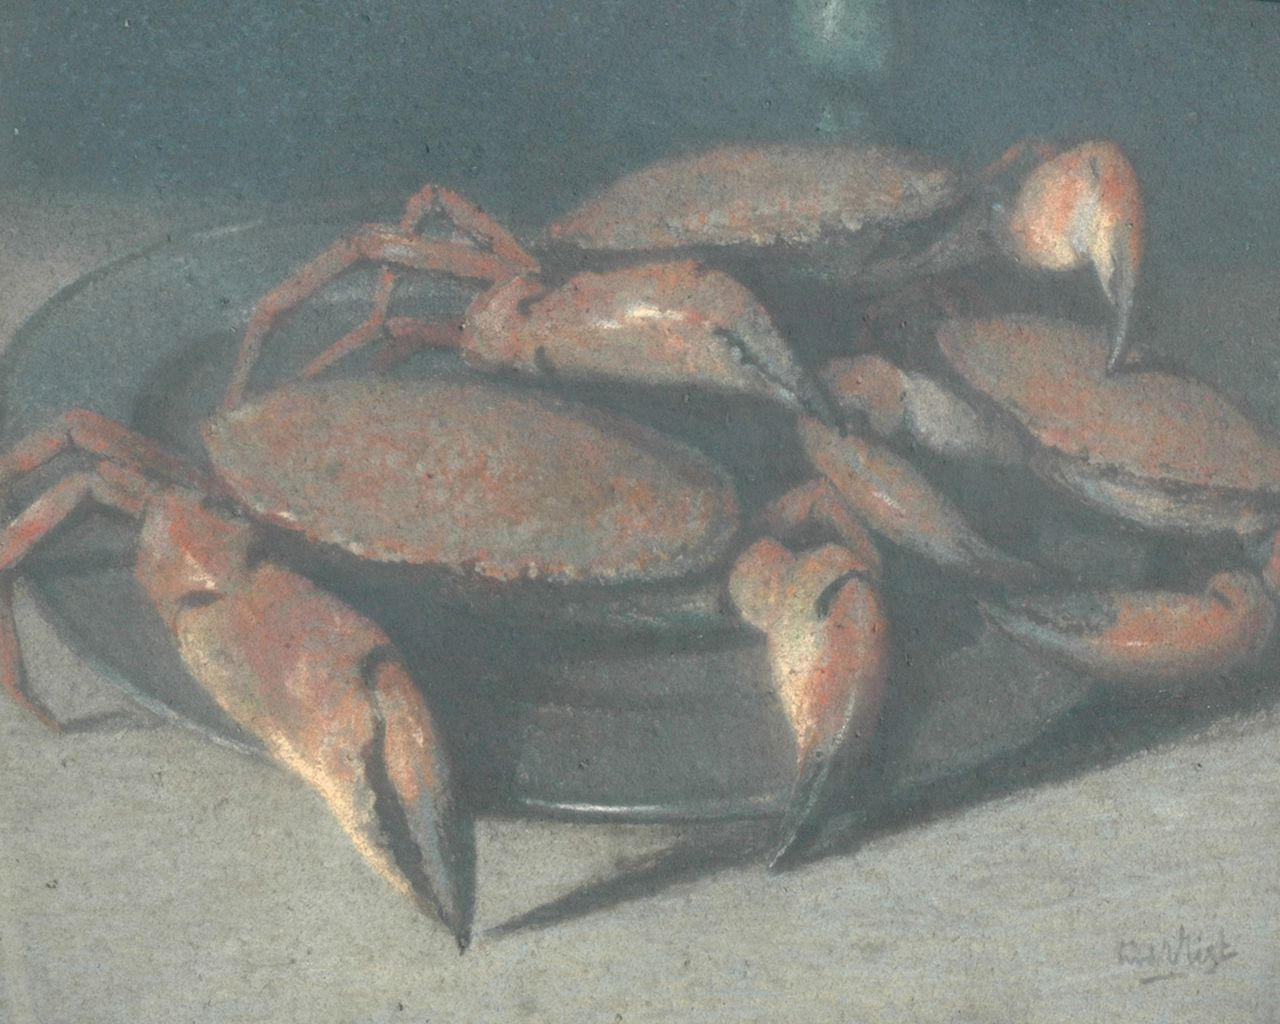 Vlist L. van der | Leendert van der Vlist | Watercolours and drawings offered for sale | Still life with crabs, pastel on paper 68.0 x 83.0 cm, signed l.r.